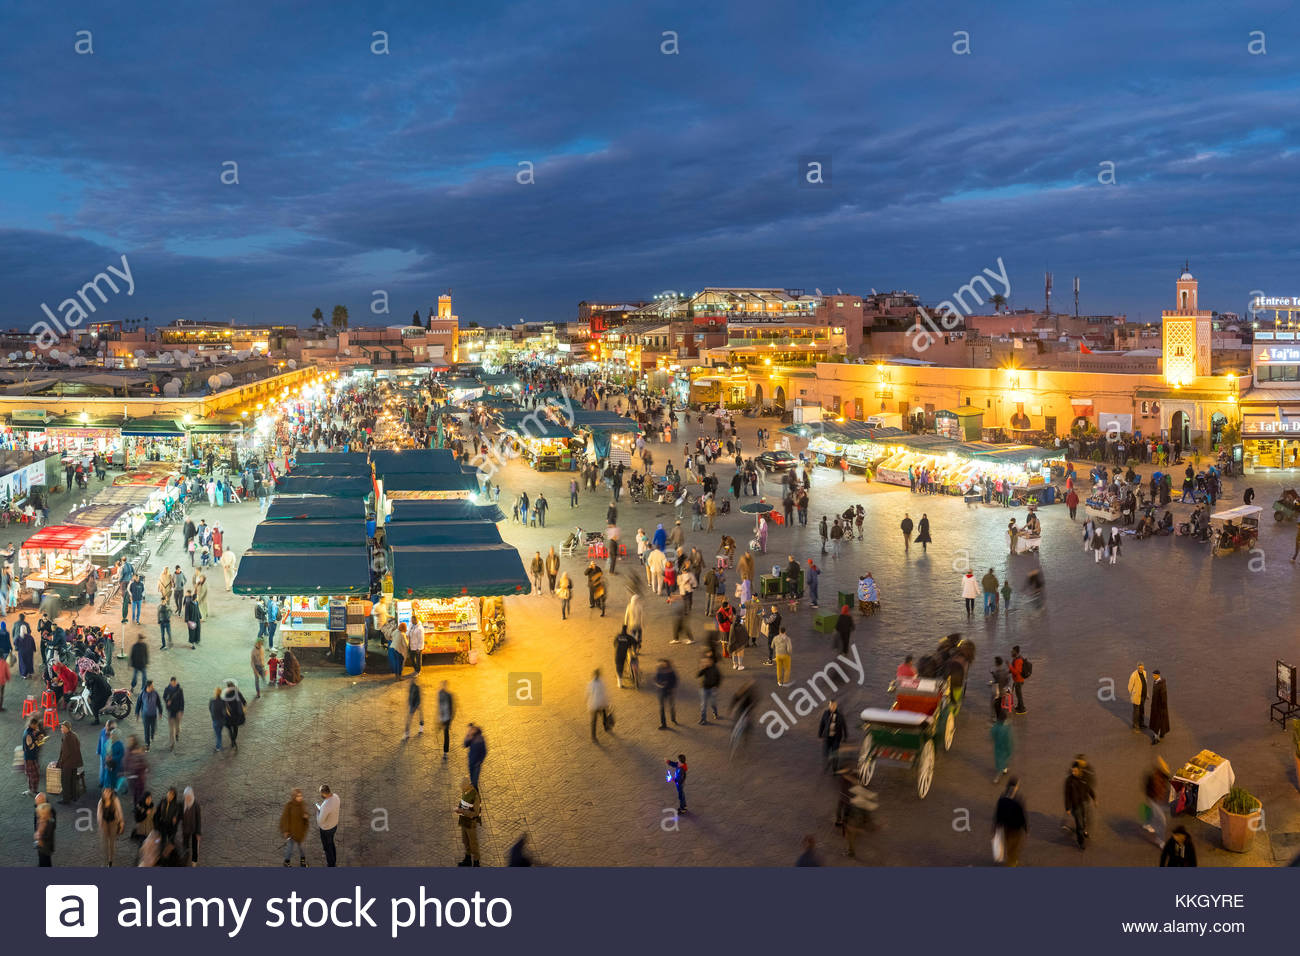 Morocco, Marrakech-Safi (Marrakesh-Tensift-El Haouz) region, Marrakesh. Jamaa El-Fna square at dusk. - Stock Image